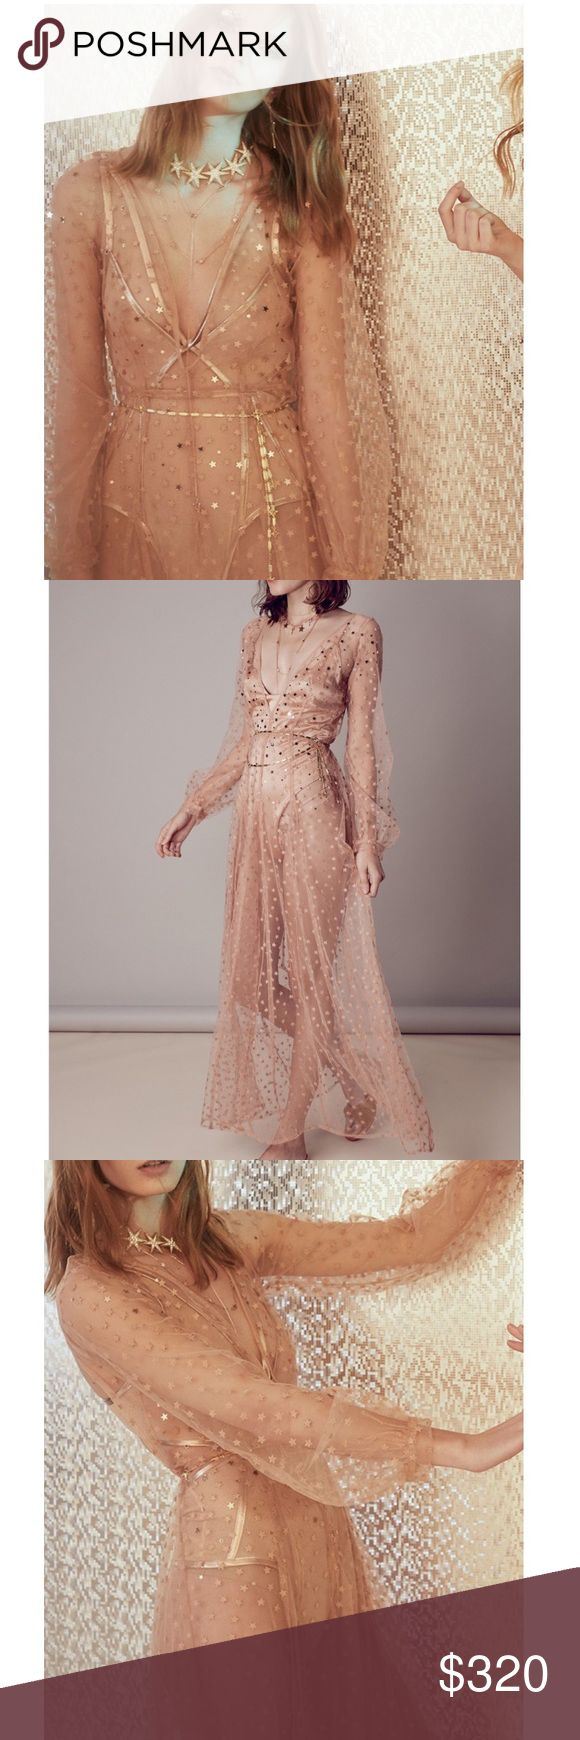 New For Love & Lemons All that Glitters Dress NWT Brand new with tags, this gorgeous For Love & Lemons All That Glitters Maxi Dress in almond is the perfect dress for the summer season. Featuring dainty embroidered stars and an allusive v-neck line. With sheer long sleeves and a maxi skirt silhouette and back cut-out.  This dress comes with matching slip show in last picture. $334 on FLL website.  Back Cut-out With Button Closure Mesh Fabric With Embroidered Stars  Hidden Back Zipper Closure…